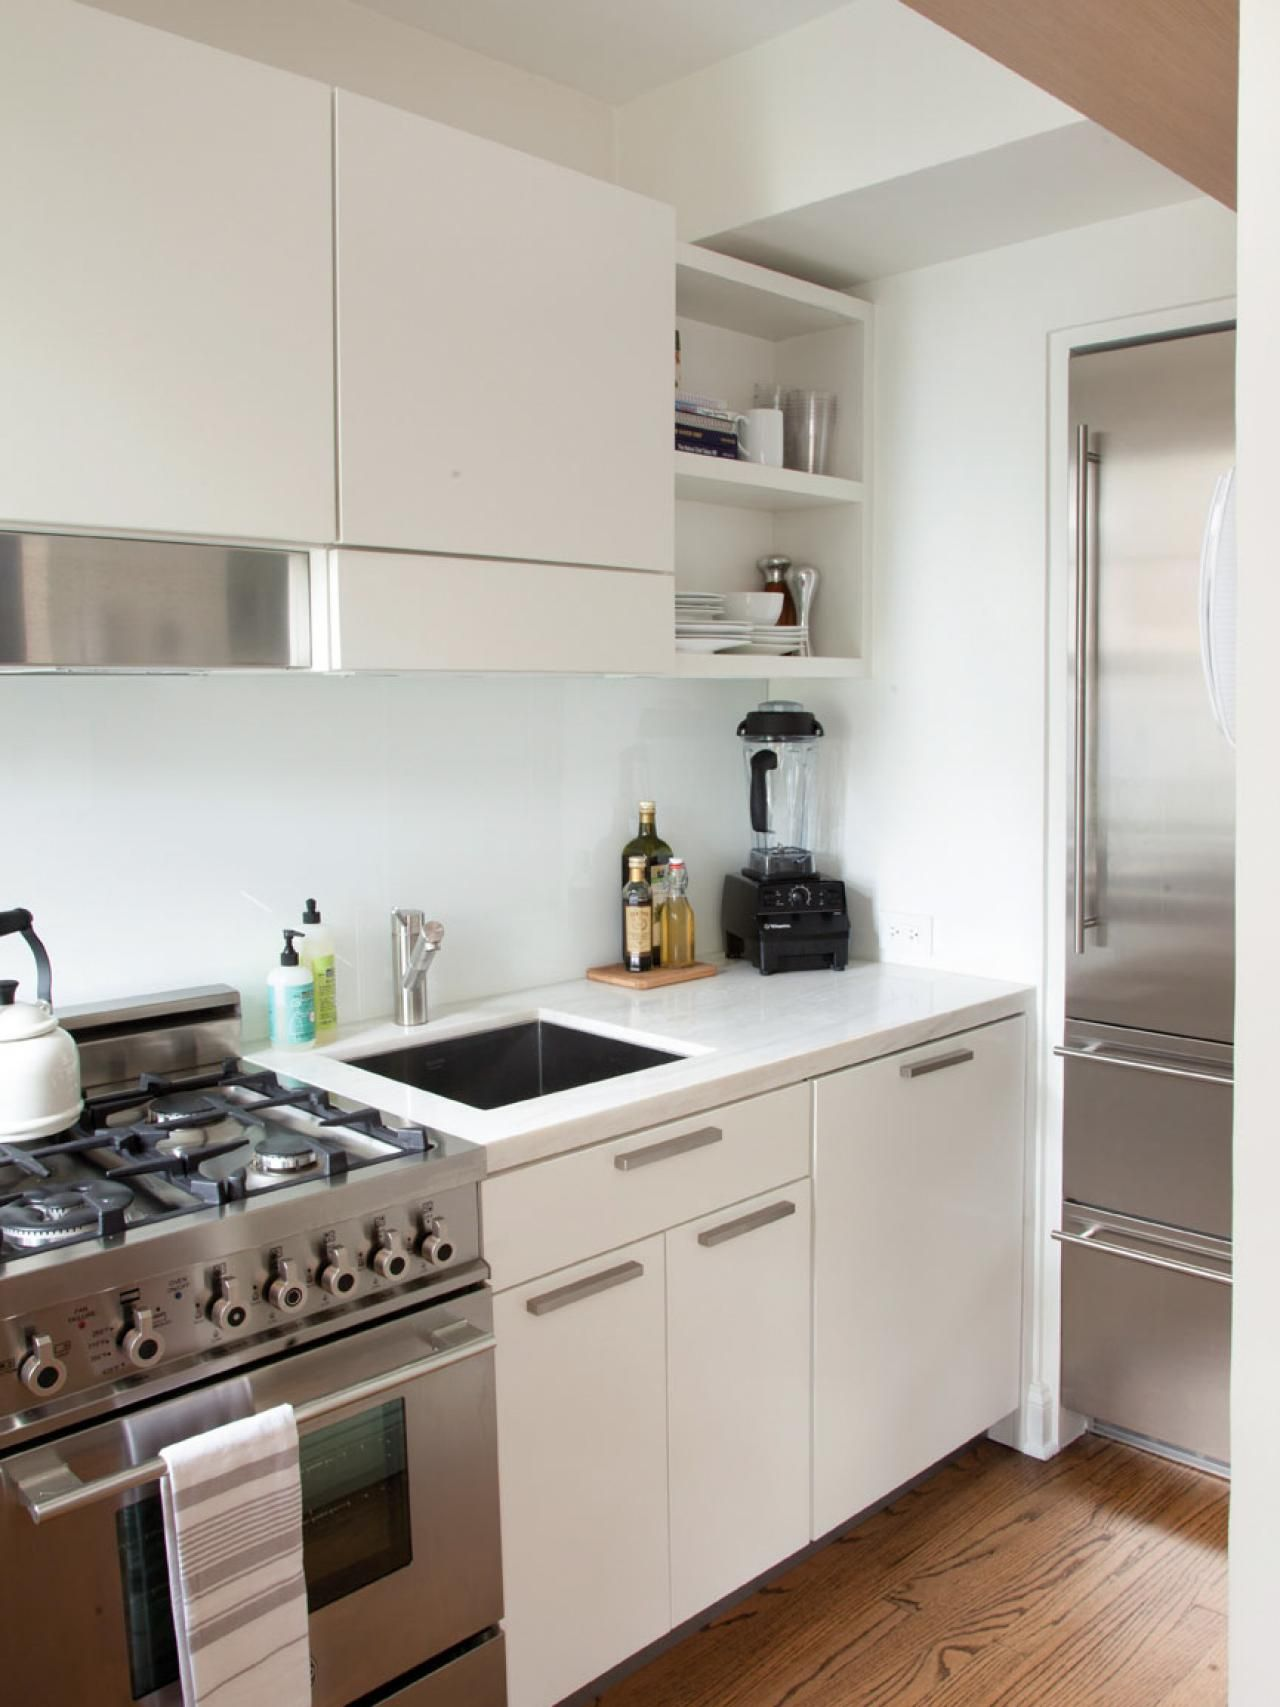 Pictures Of Small Kitchen Design Ideas From  Simple Kitchen Delectable Kitchen Design Small Spaces 2018